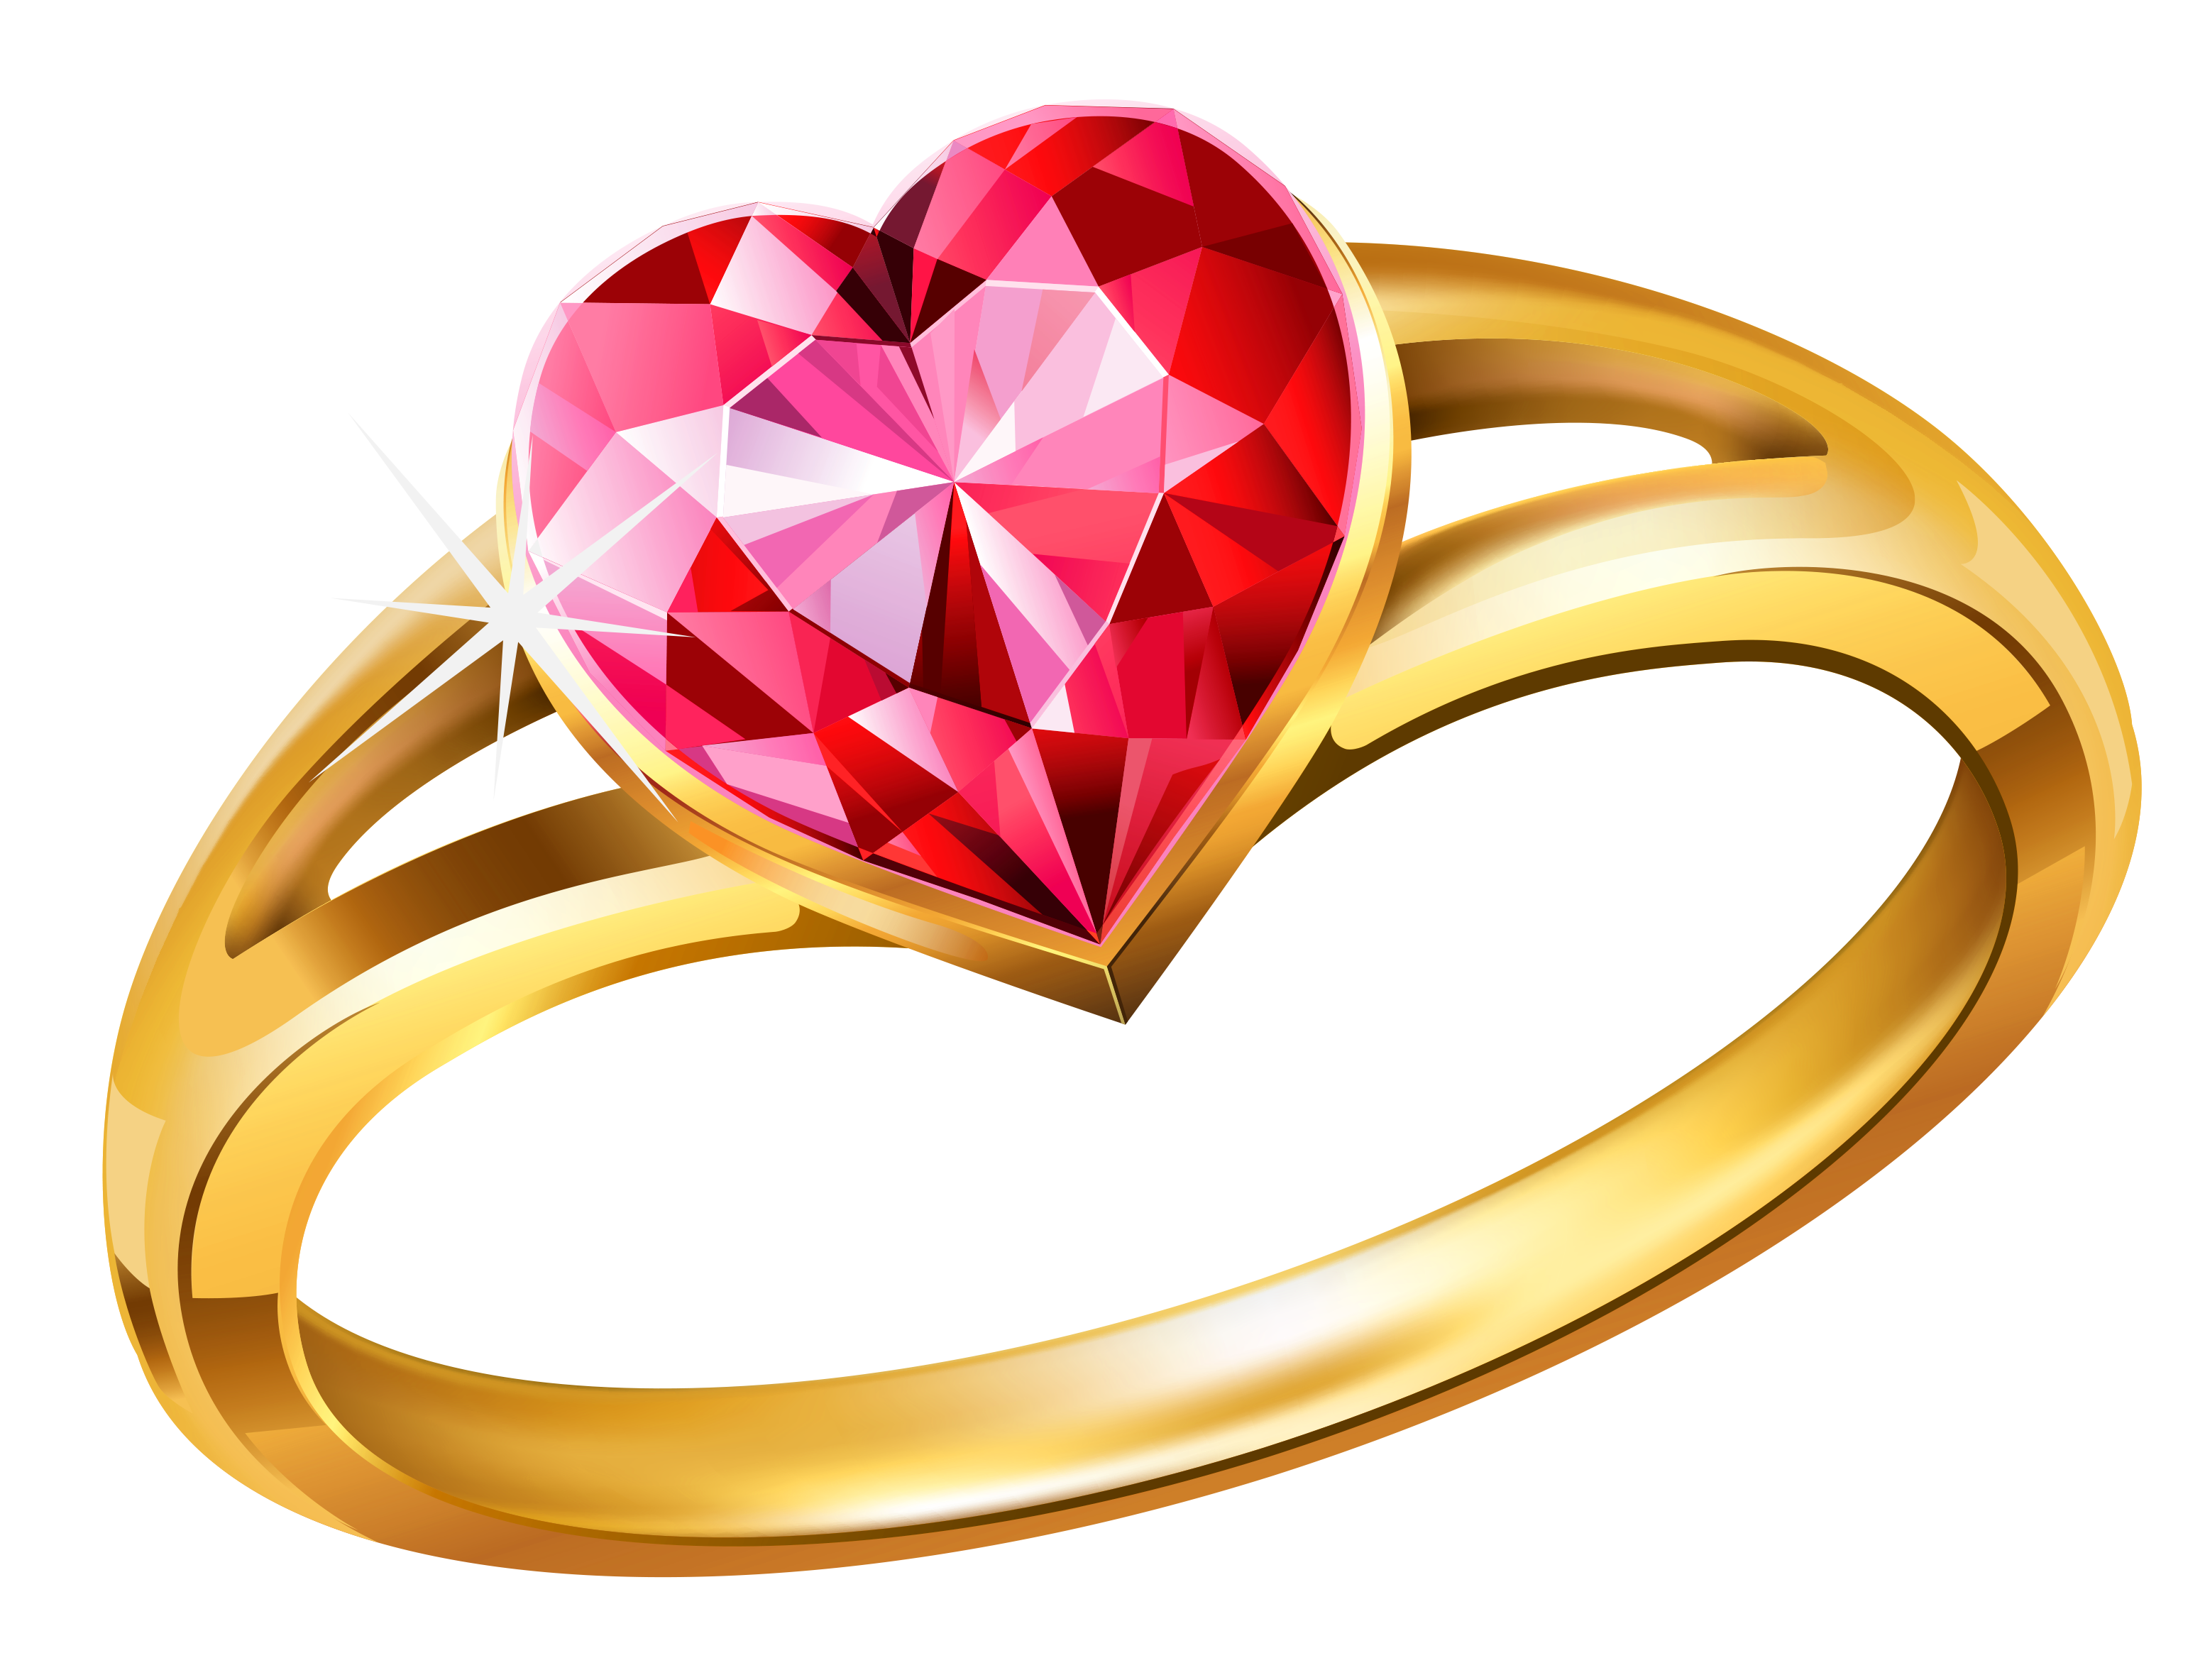 Clipart jewellers new jersey clipart images gallery for free.